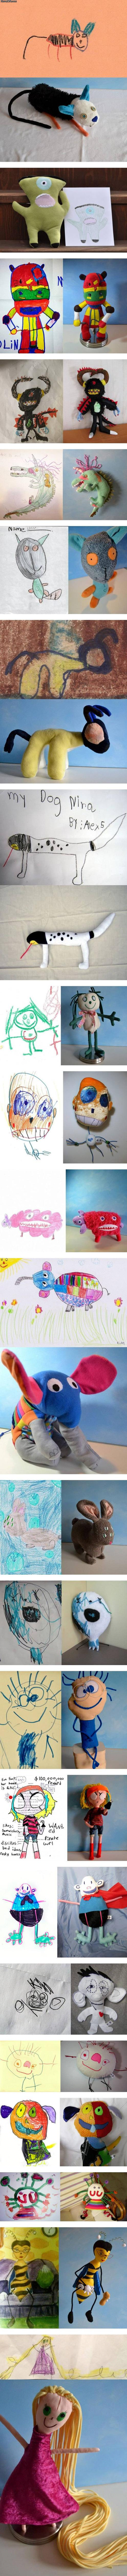 If Children S Drawings Were Made Into Toys Objects Of Desire